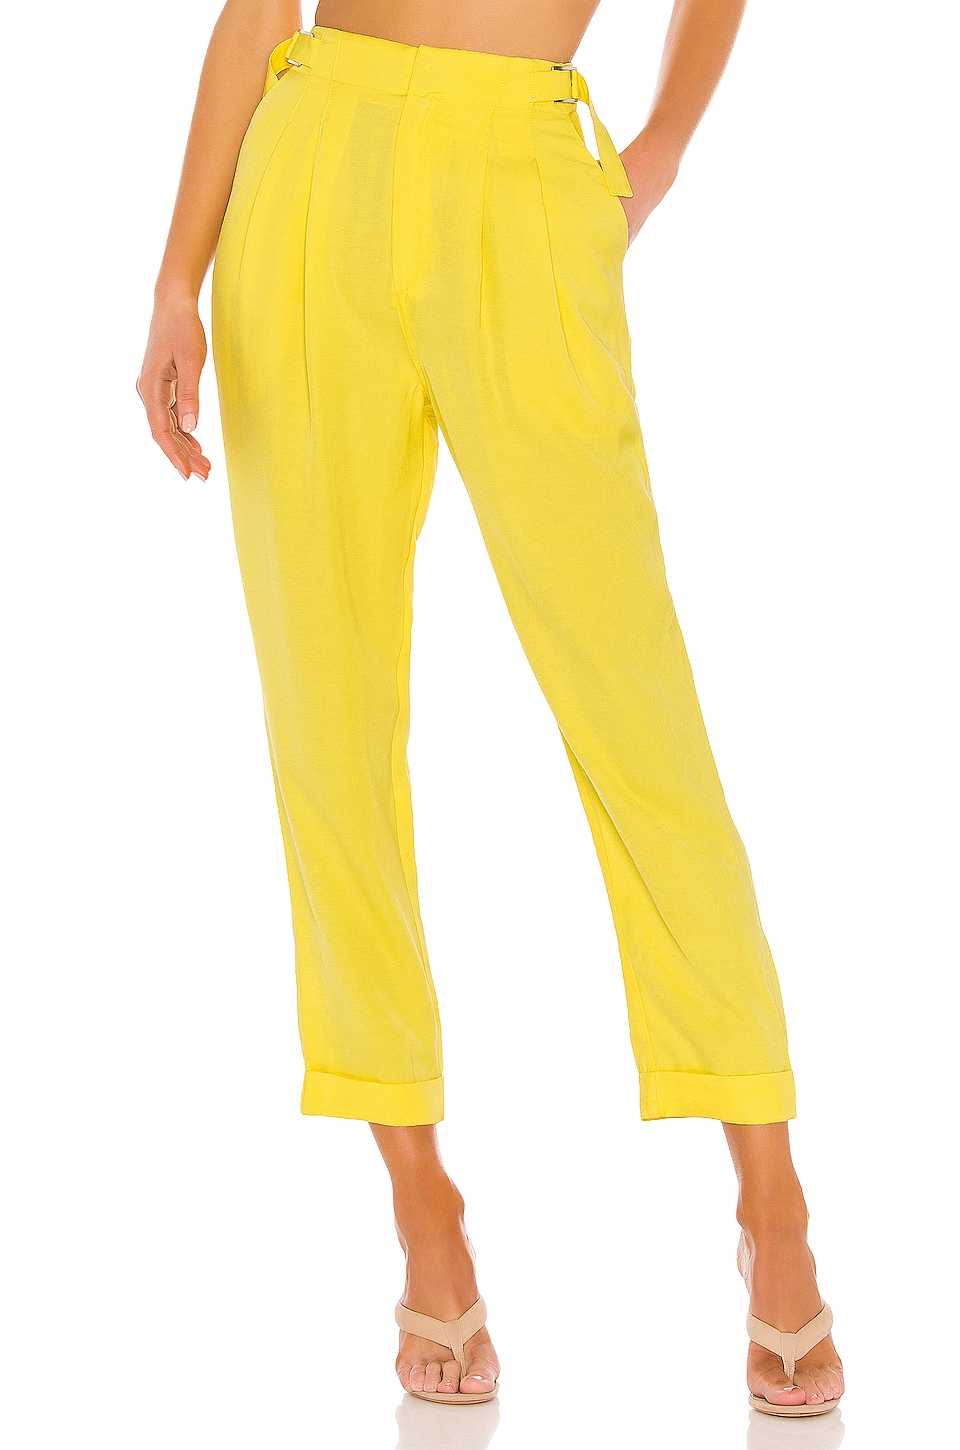 L'Academie The Agnes Pant in Yellow